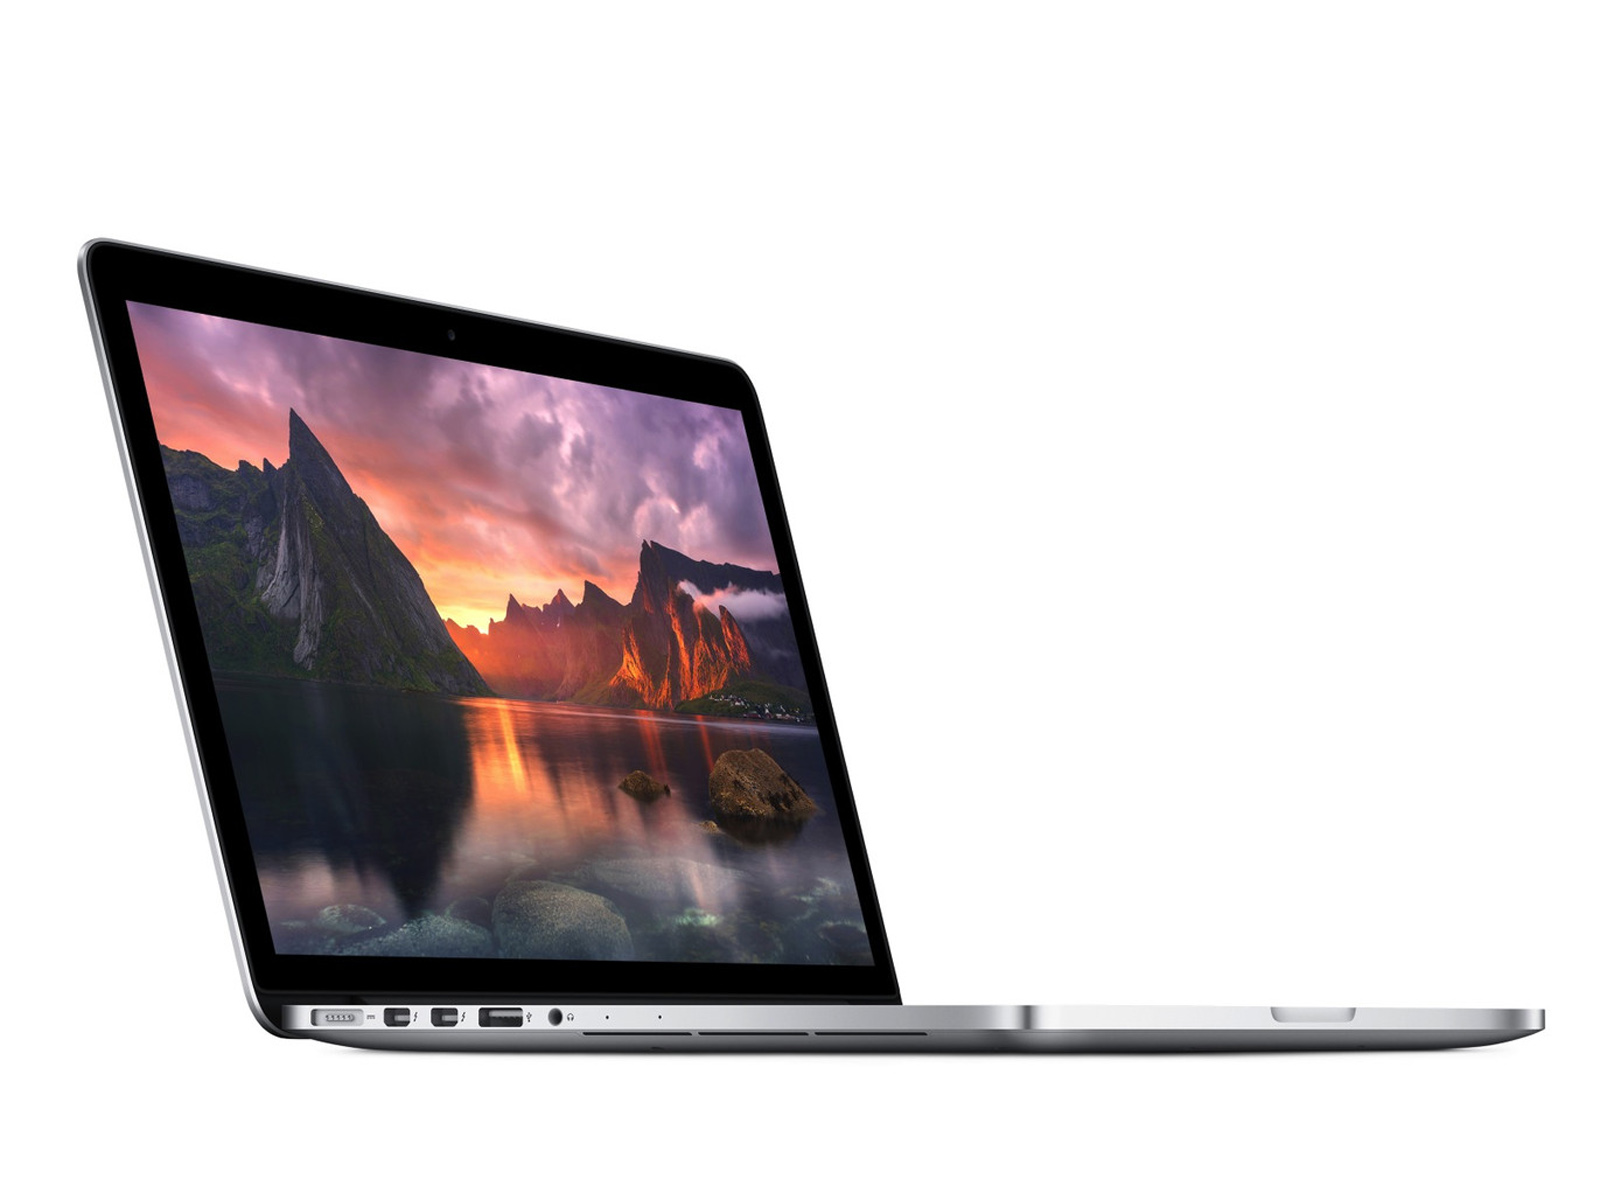 Apple MacBook Pro Retina 13 (Early 2015) Notebook Review